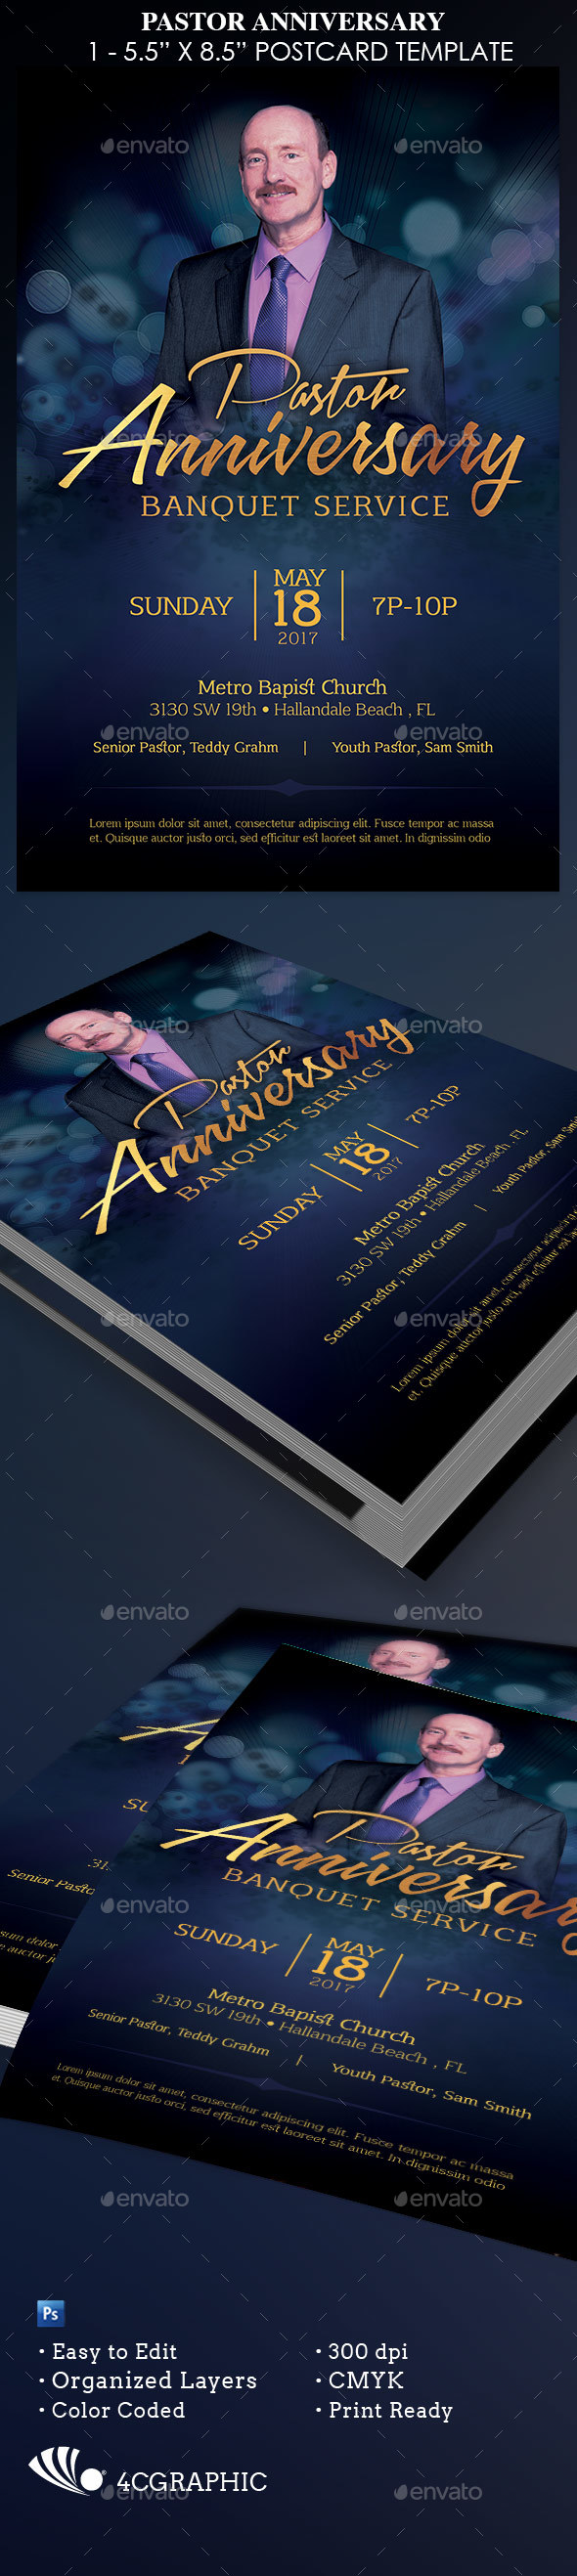 Pastor Anniversary Template - Church Flyers